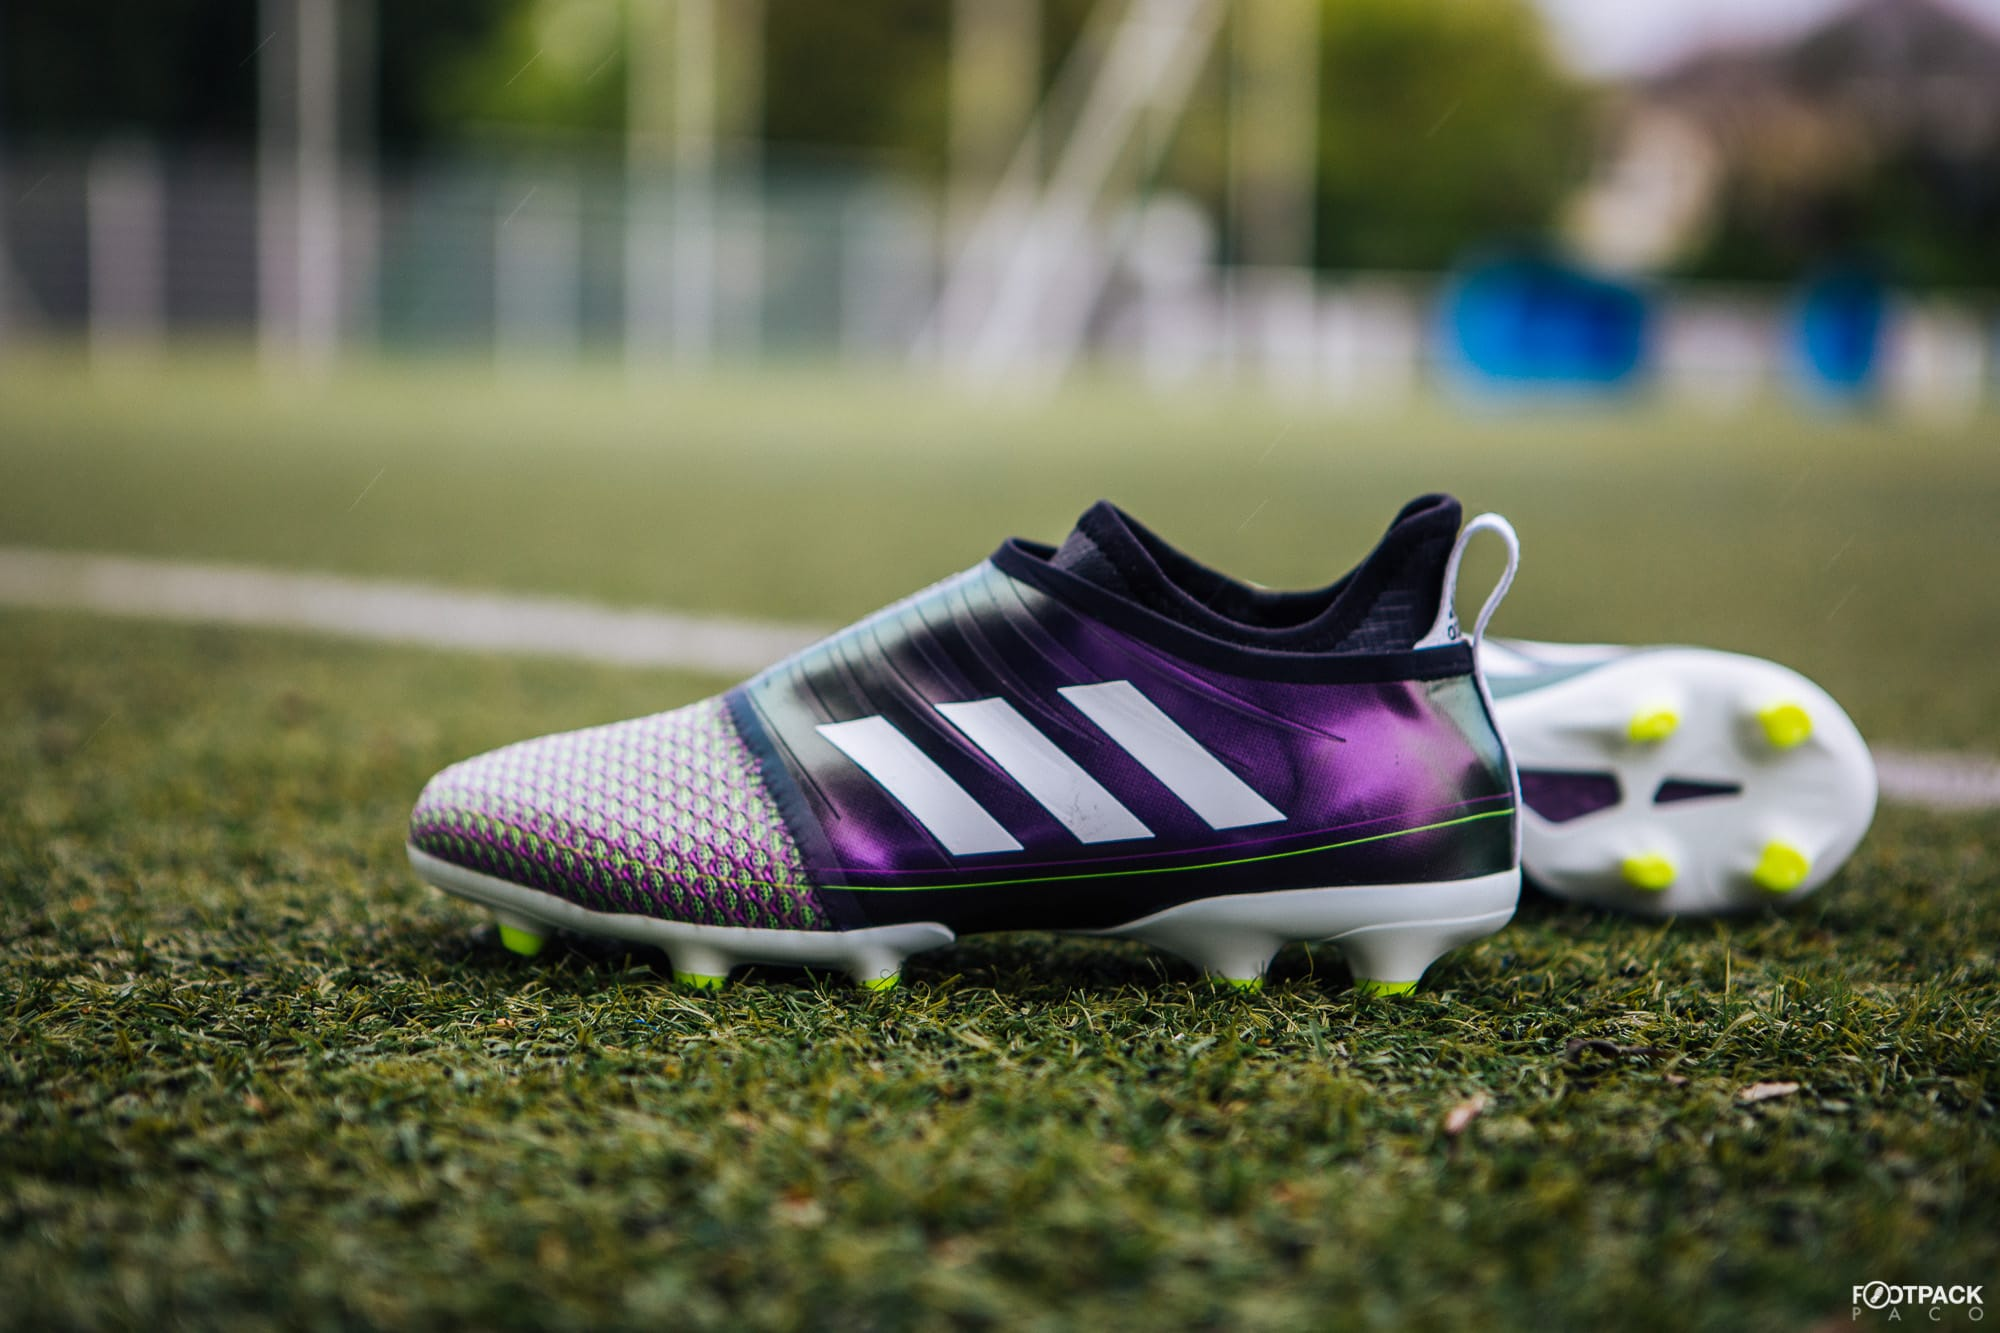 Chaussures-football-adidas-glitch-moment-f50-juin-2018